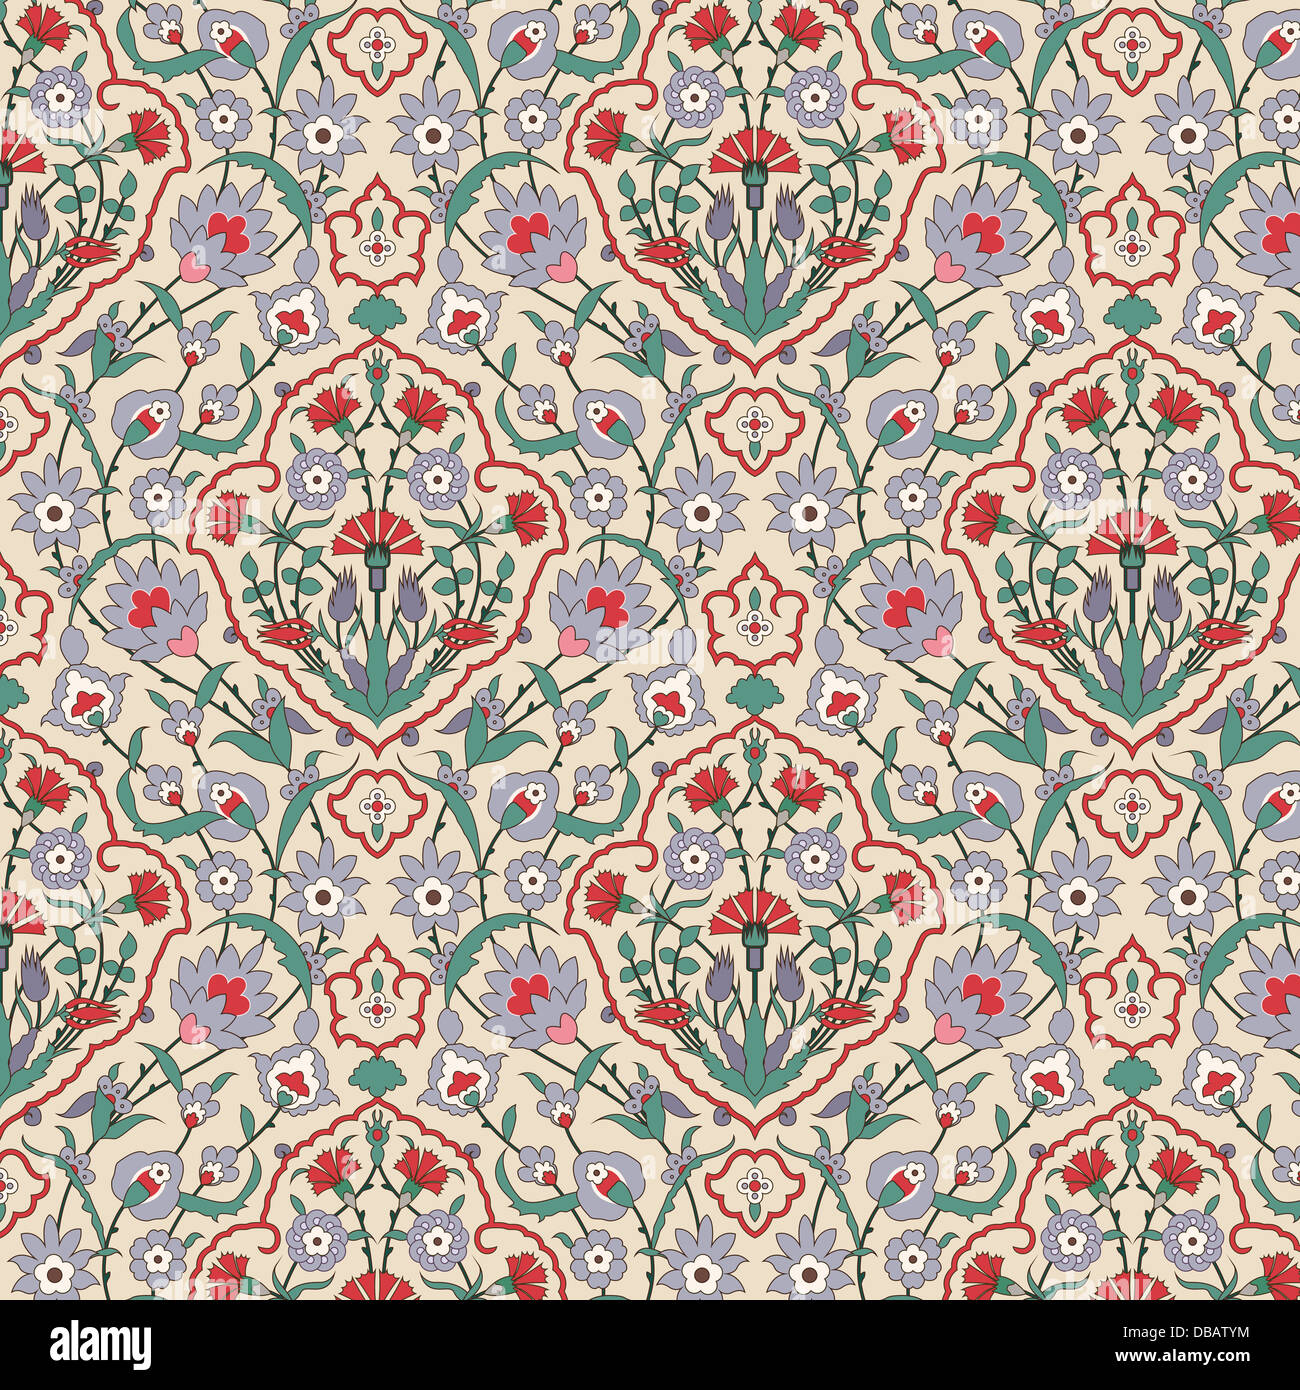 Arabesque seamless pattern with carnations - Stock Image